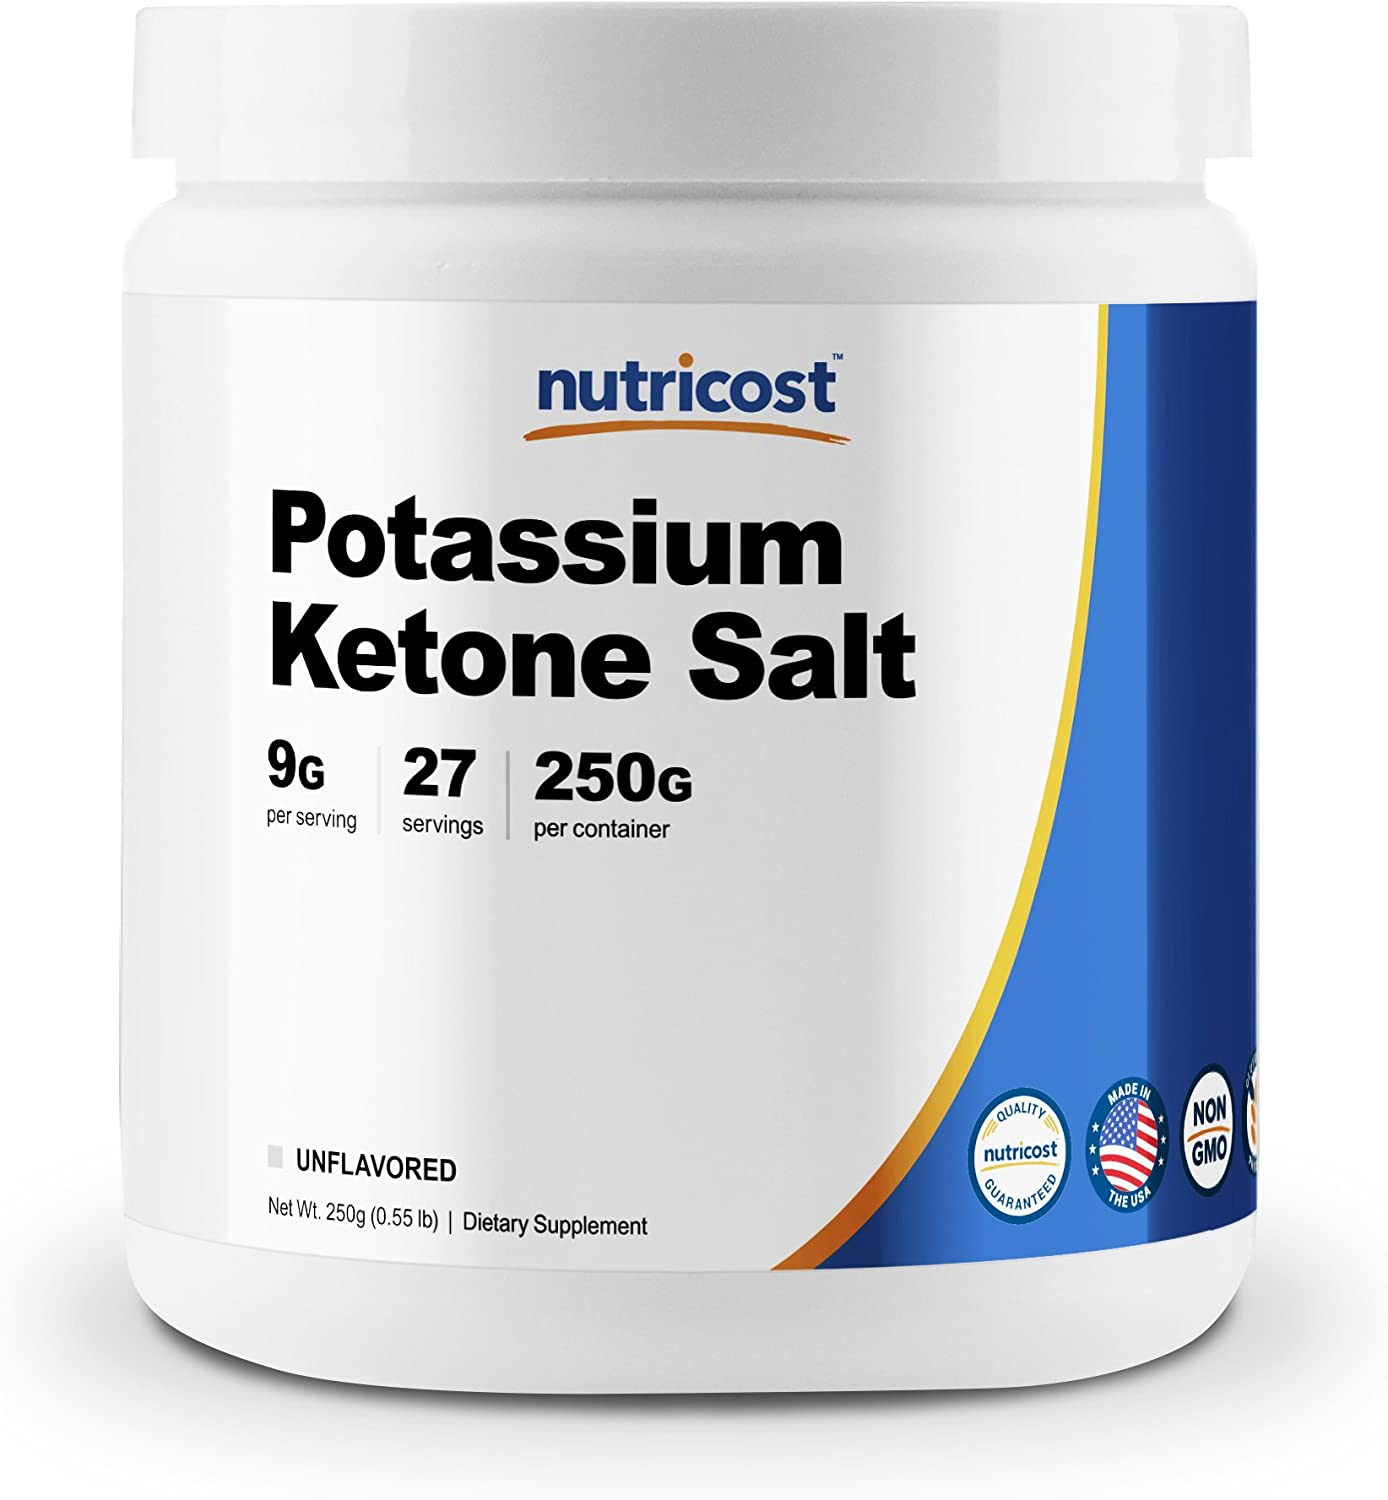 Nutricost Potassium BHB Salts, Exogenous Ketone Supplement, 6.4g Beta-Hydroxybutyrate Per Serving, 250 Grams